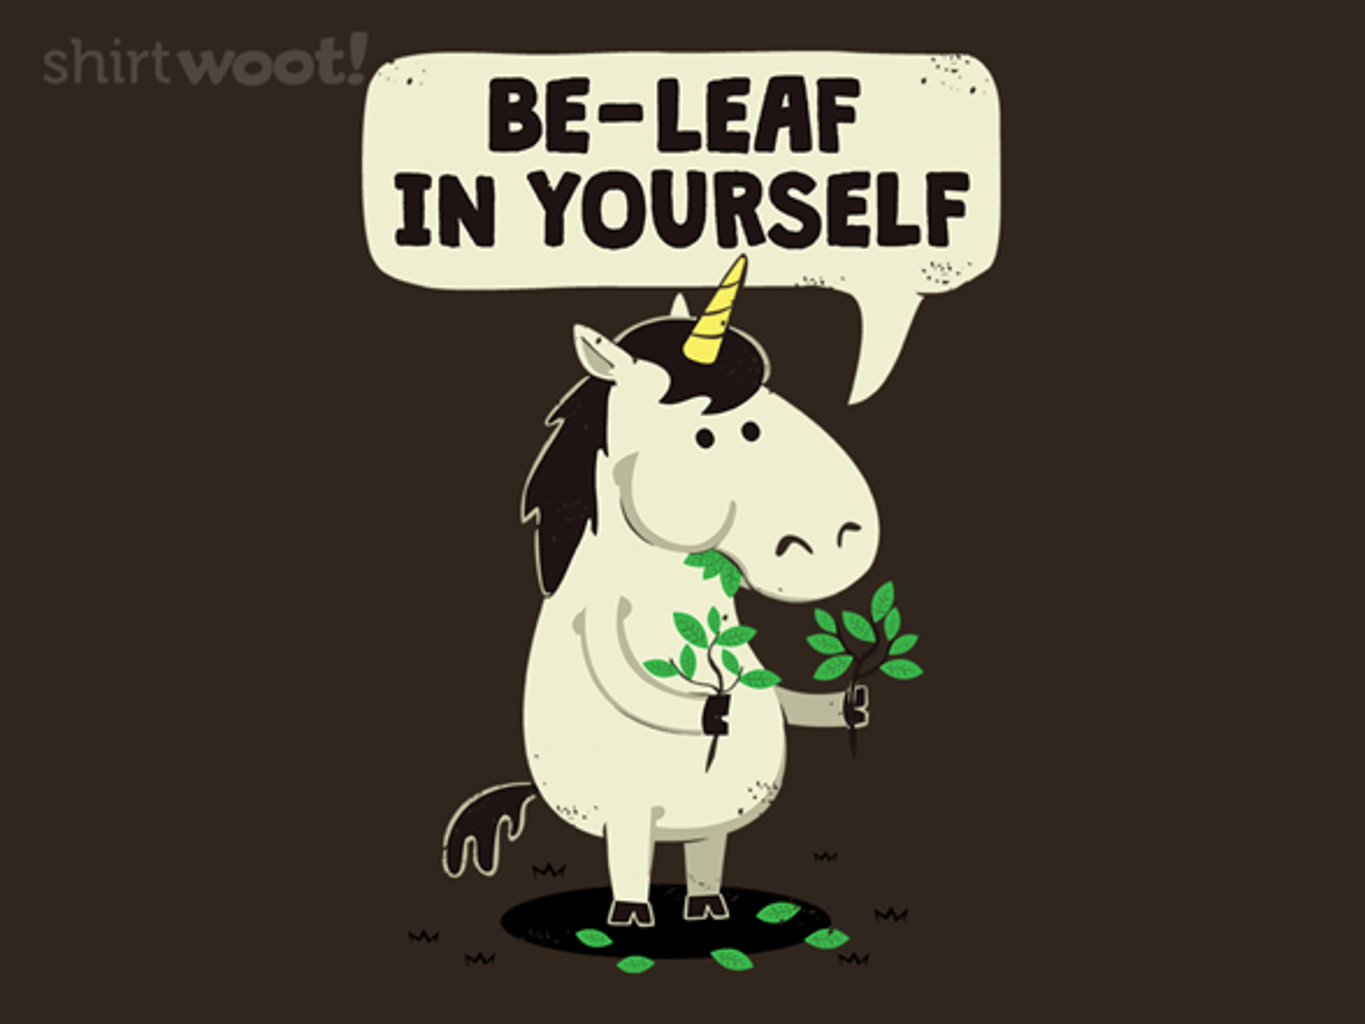 Woot!: Be-Leaf in Yourself